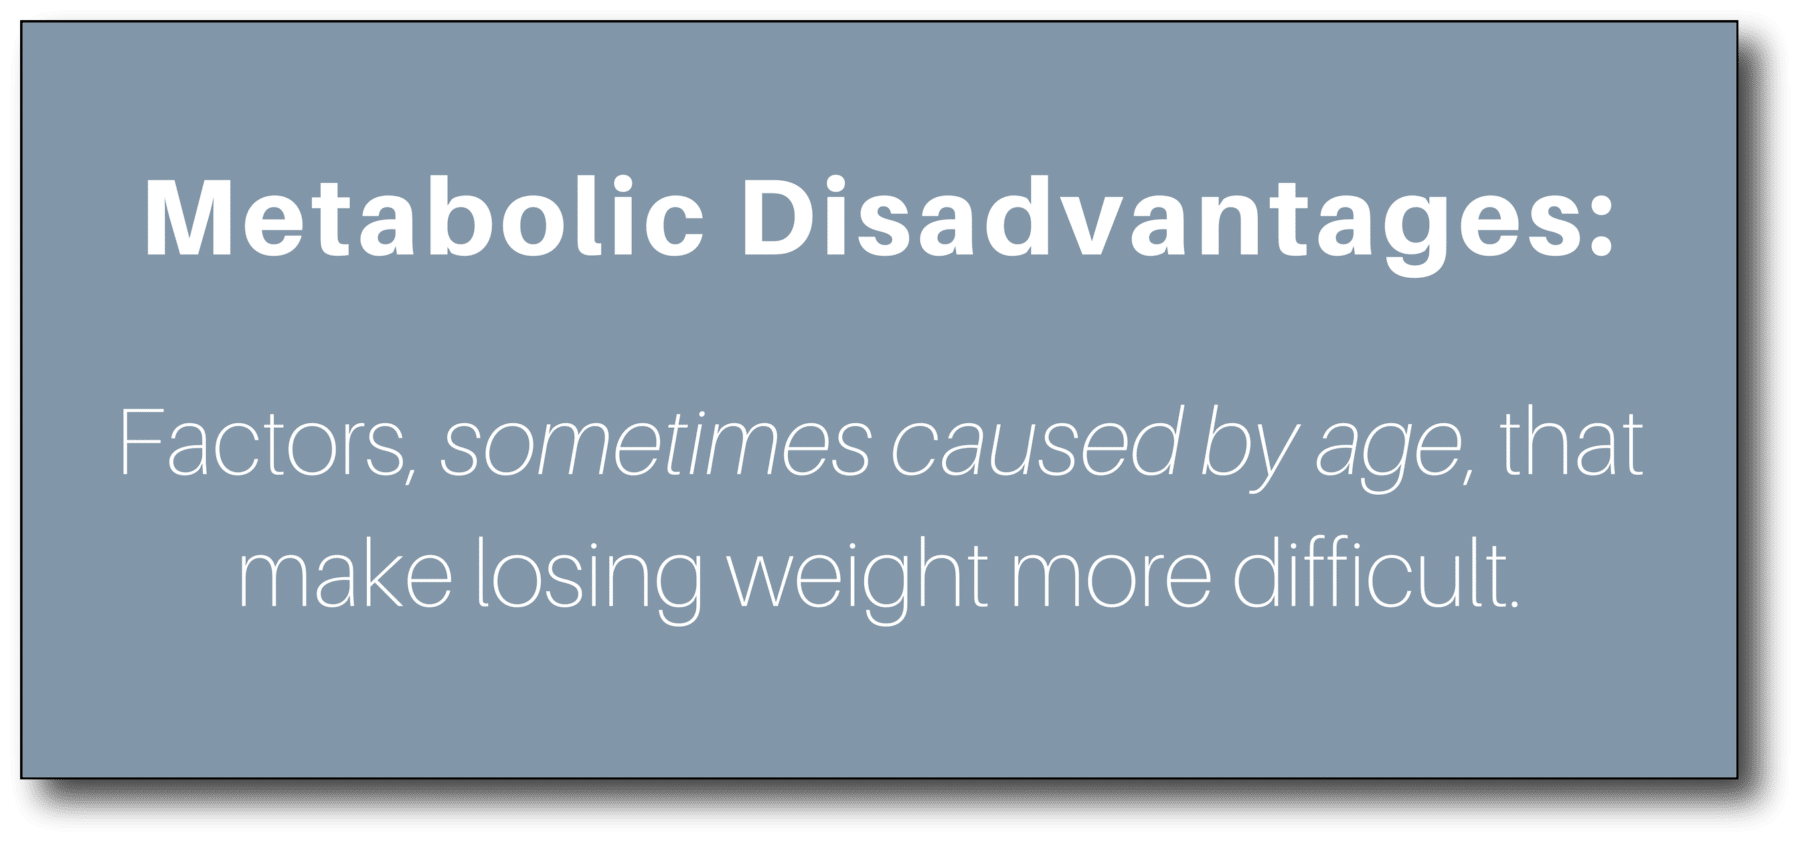 weight loss after 50 - metabolic disadvantages